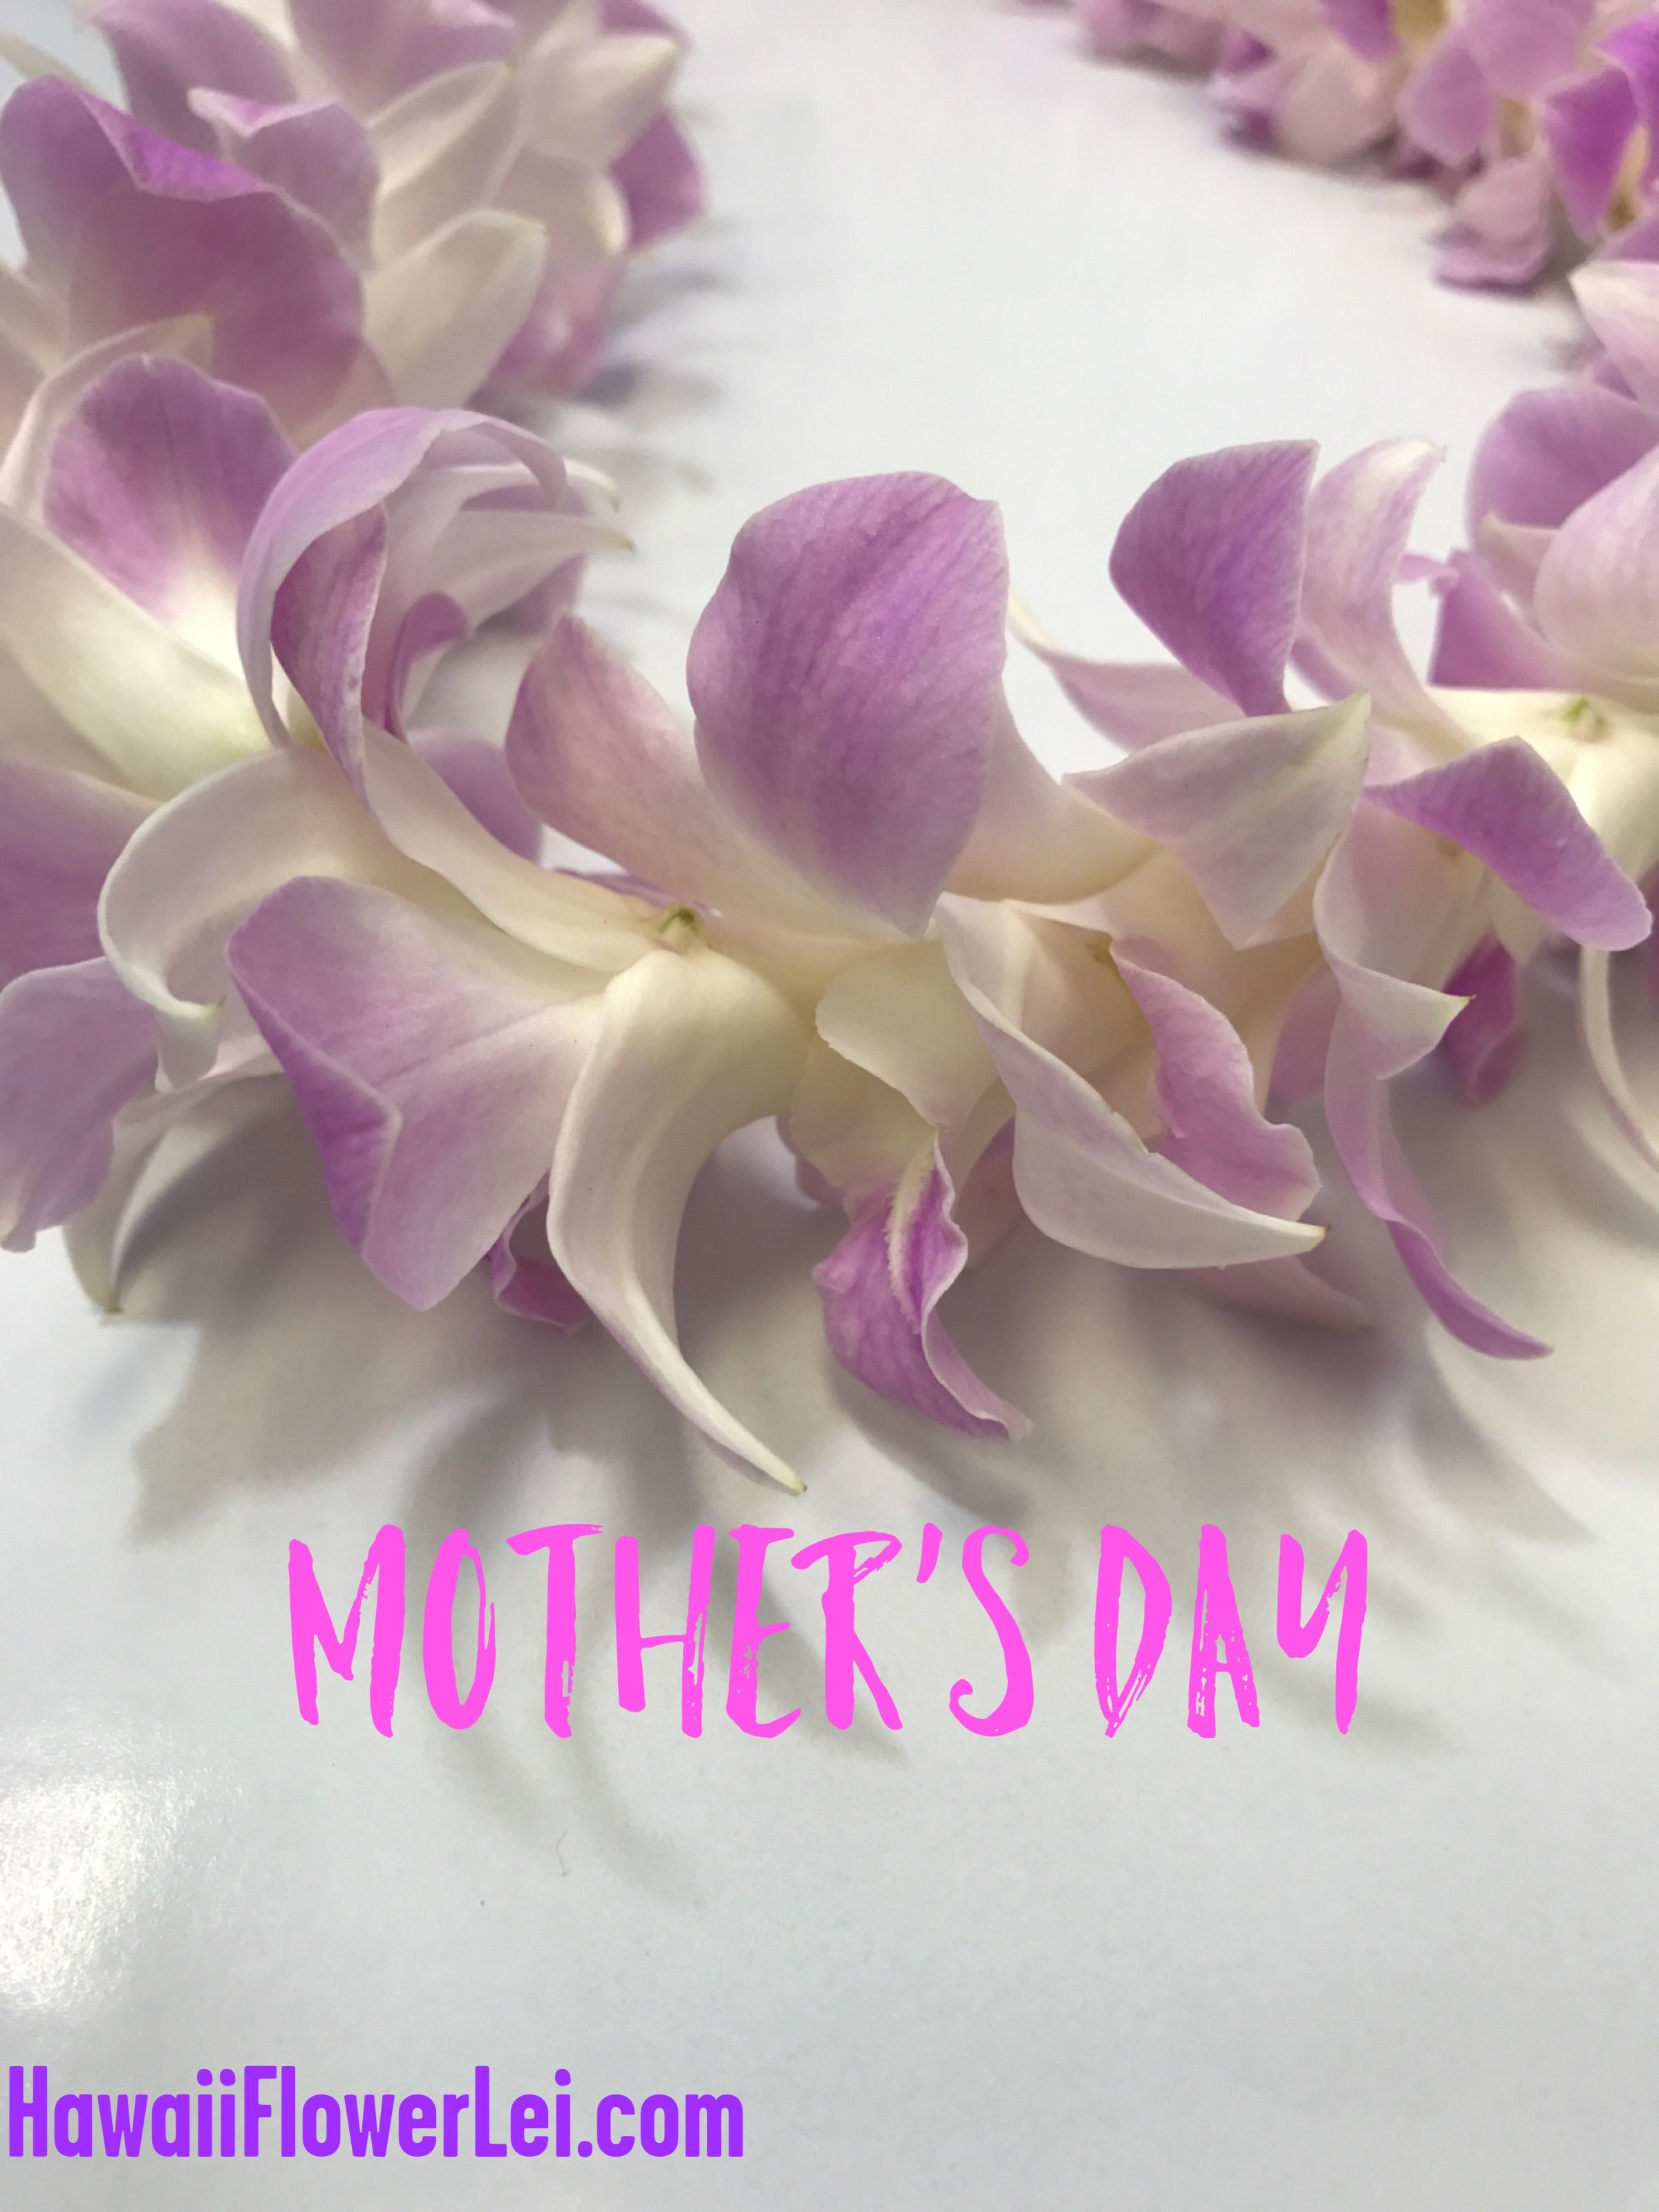 Pin By Hawaii Flower Lei On Mothers Day Gifts Flowers And